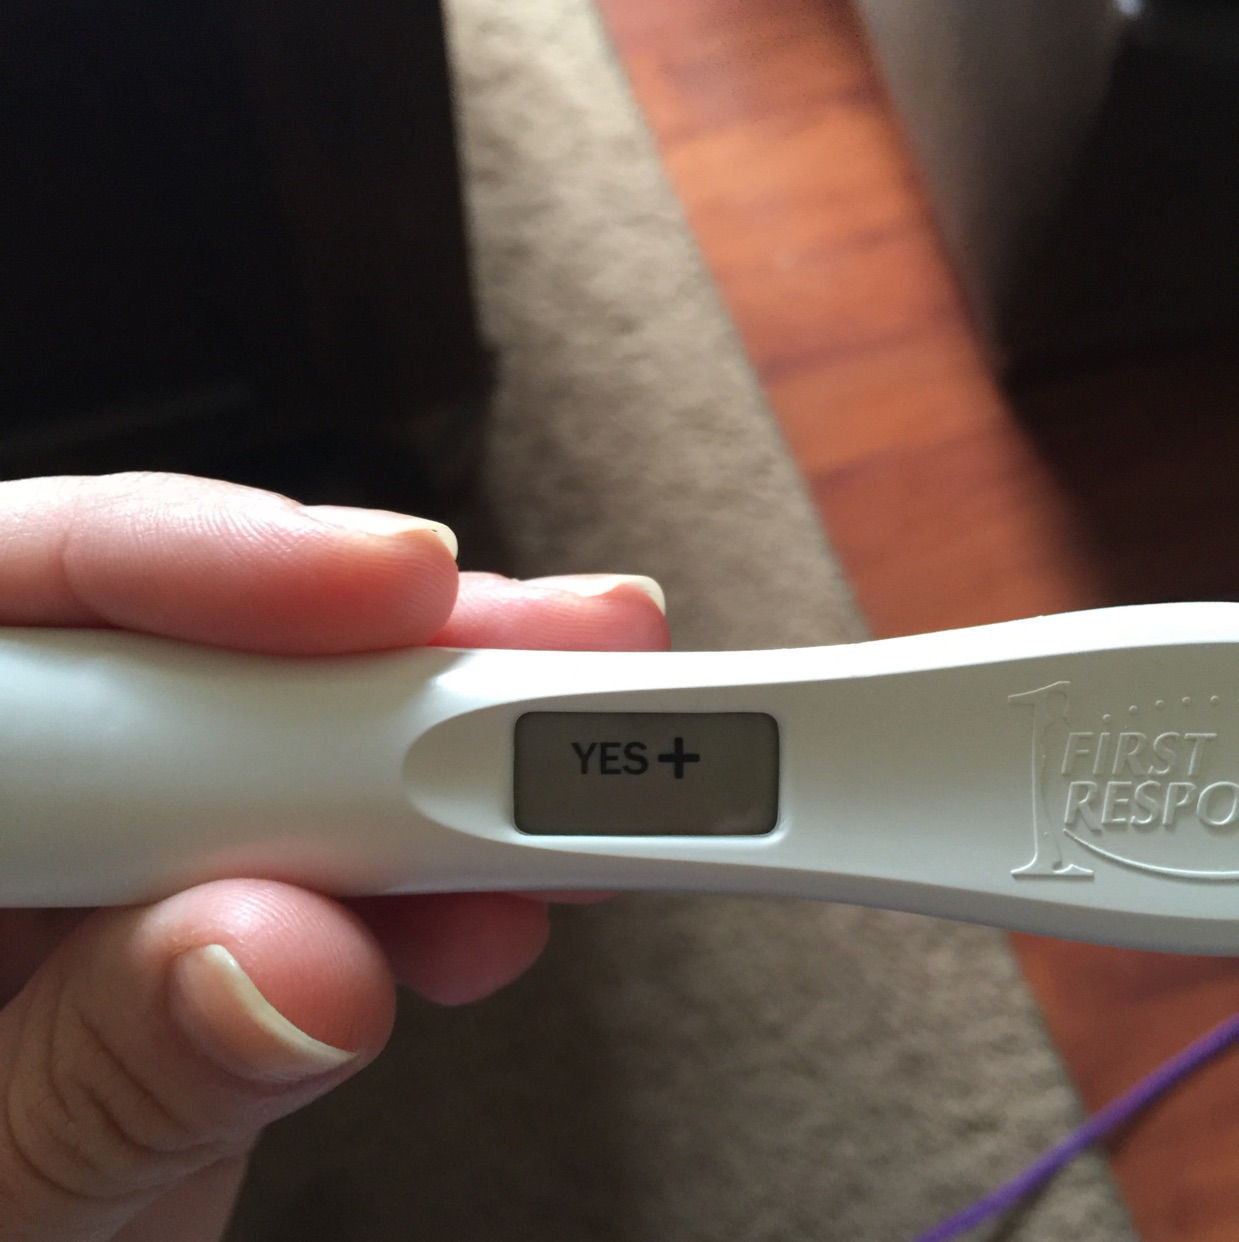 Has Anyone Ever Had A False Positive On A Frer Digital I Had A Faint Line On My Ic Hcg Test This Morning Then Took This Clear Blue Digital Isn T Picking